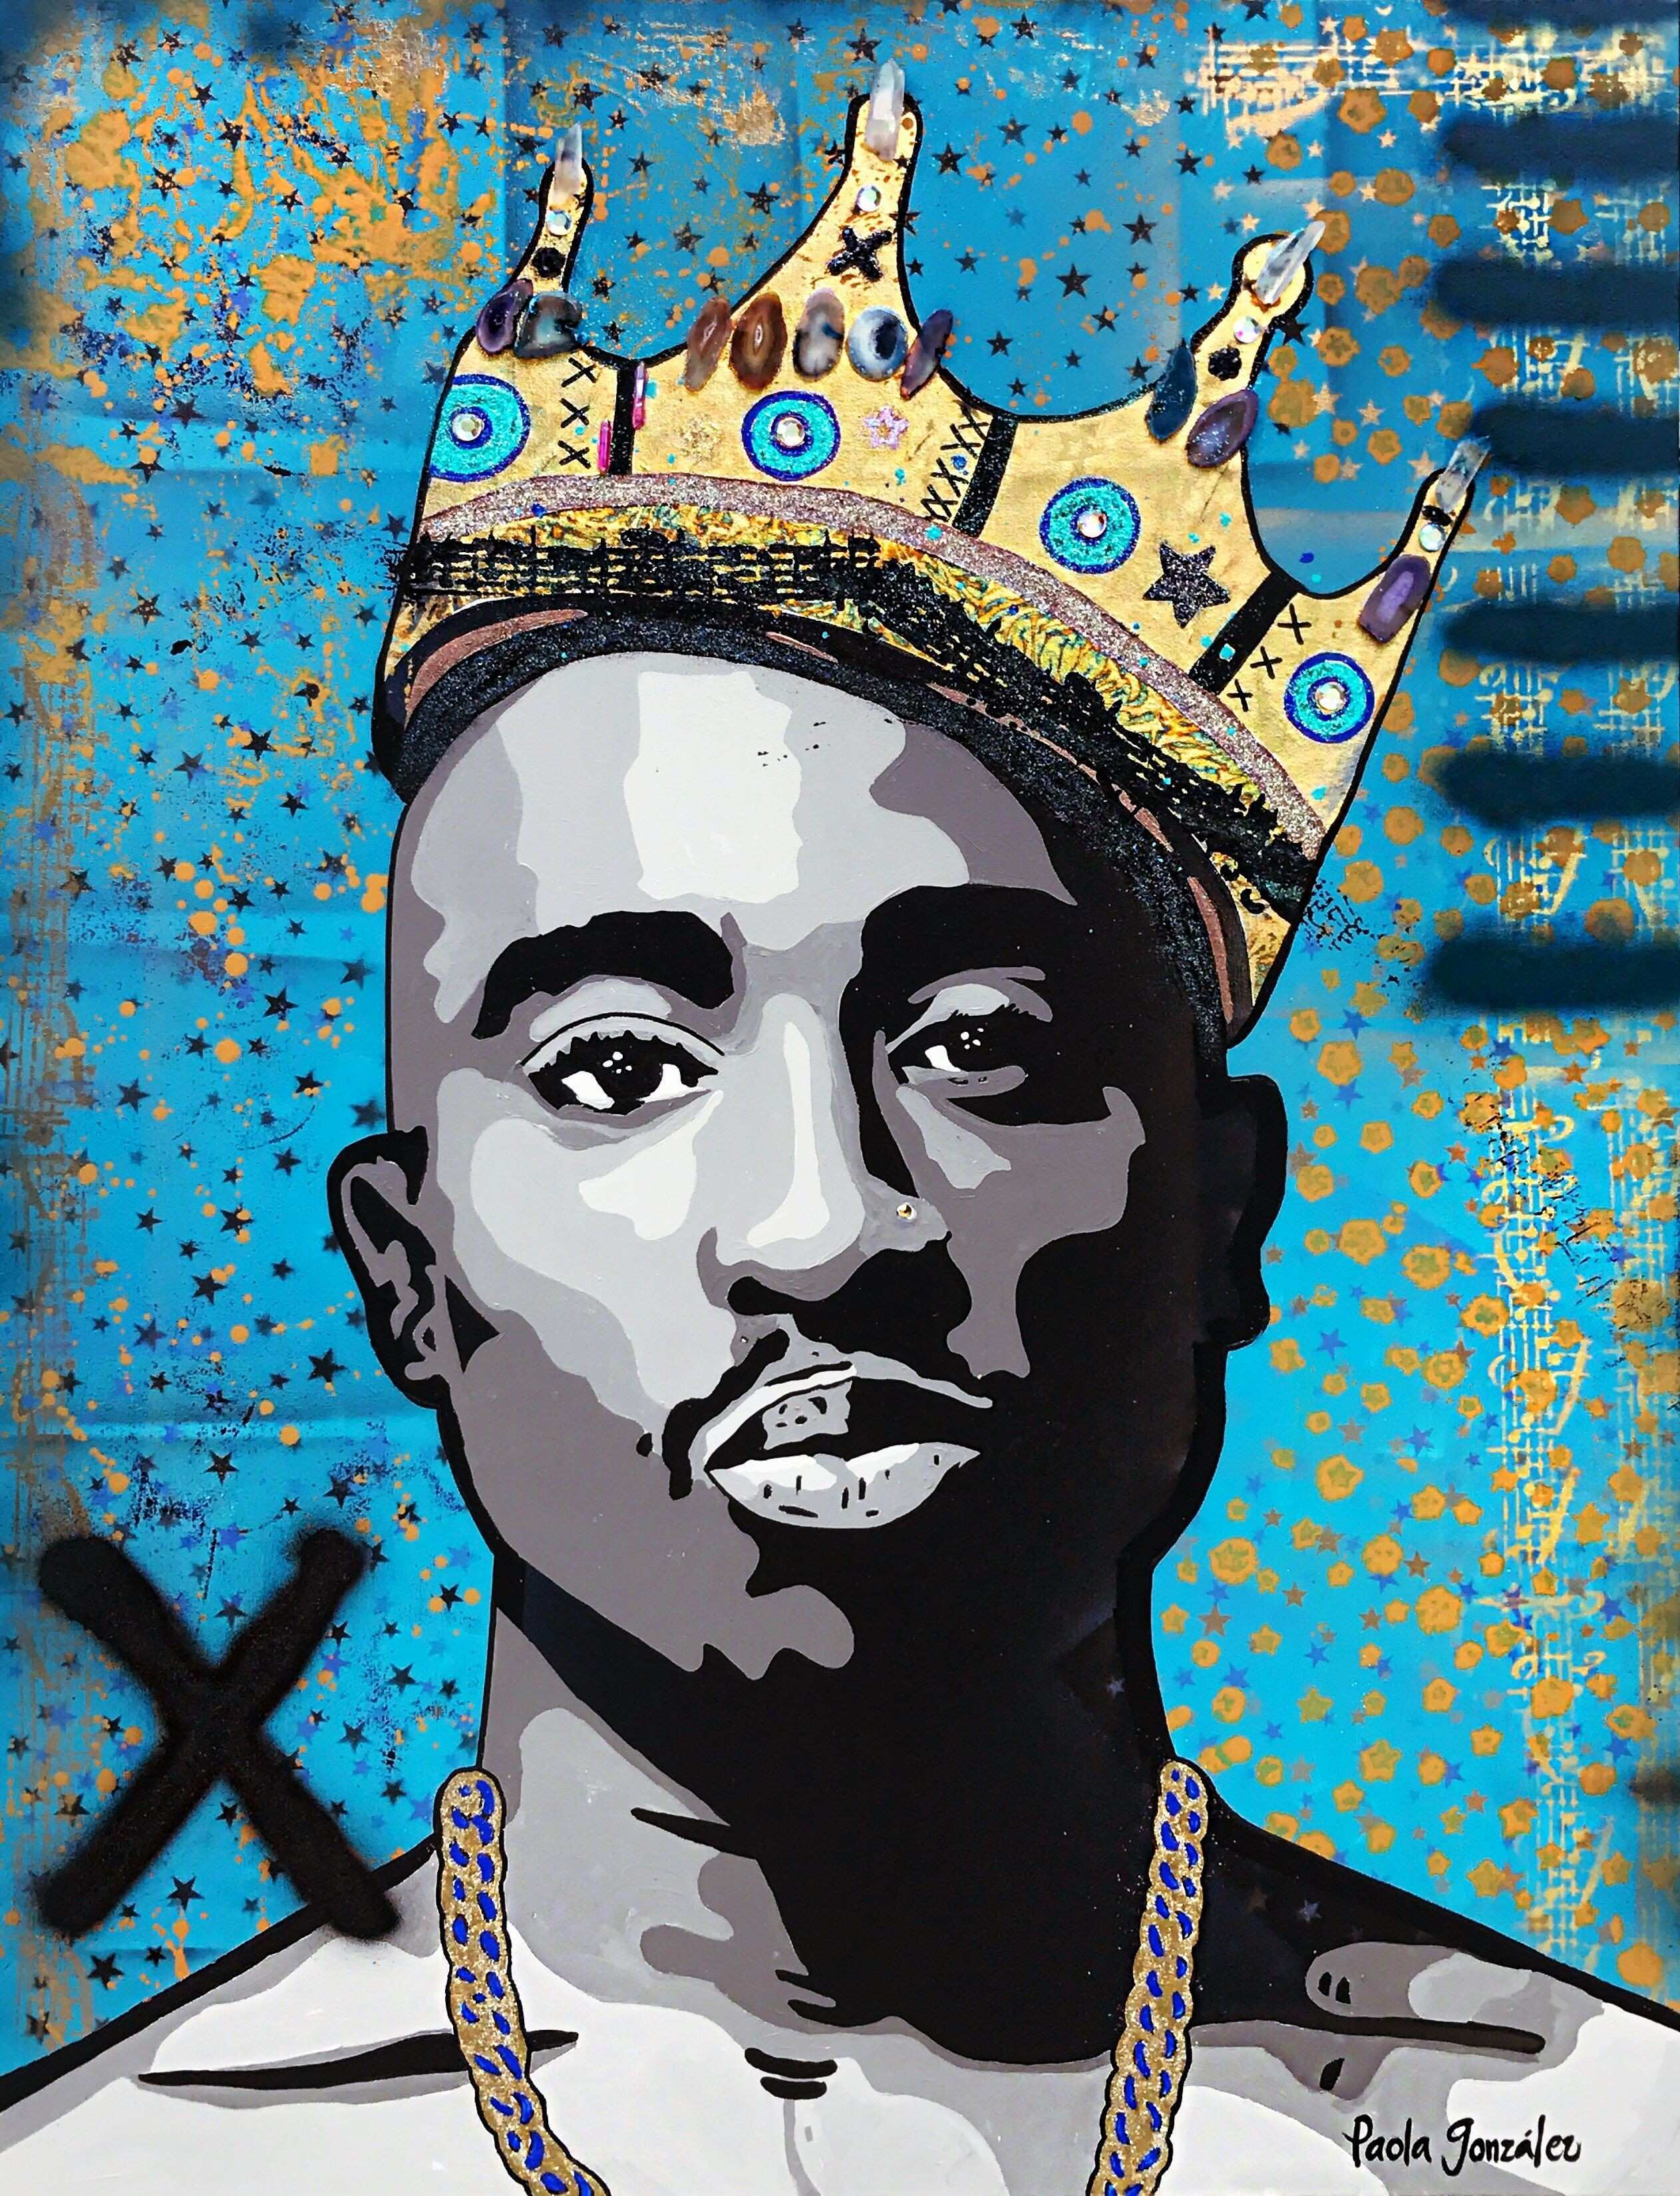 Tupac 2pac pop art icons art painting by Paola Gonzalez